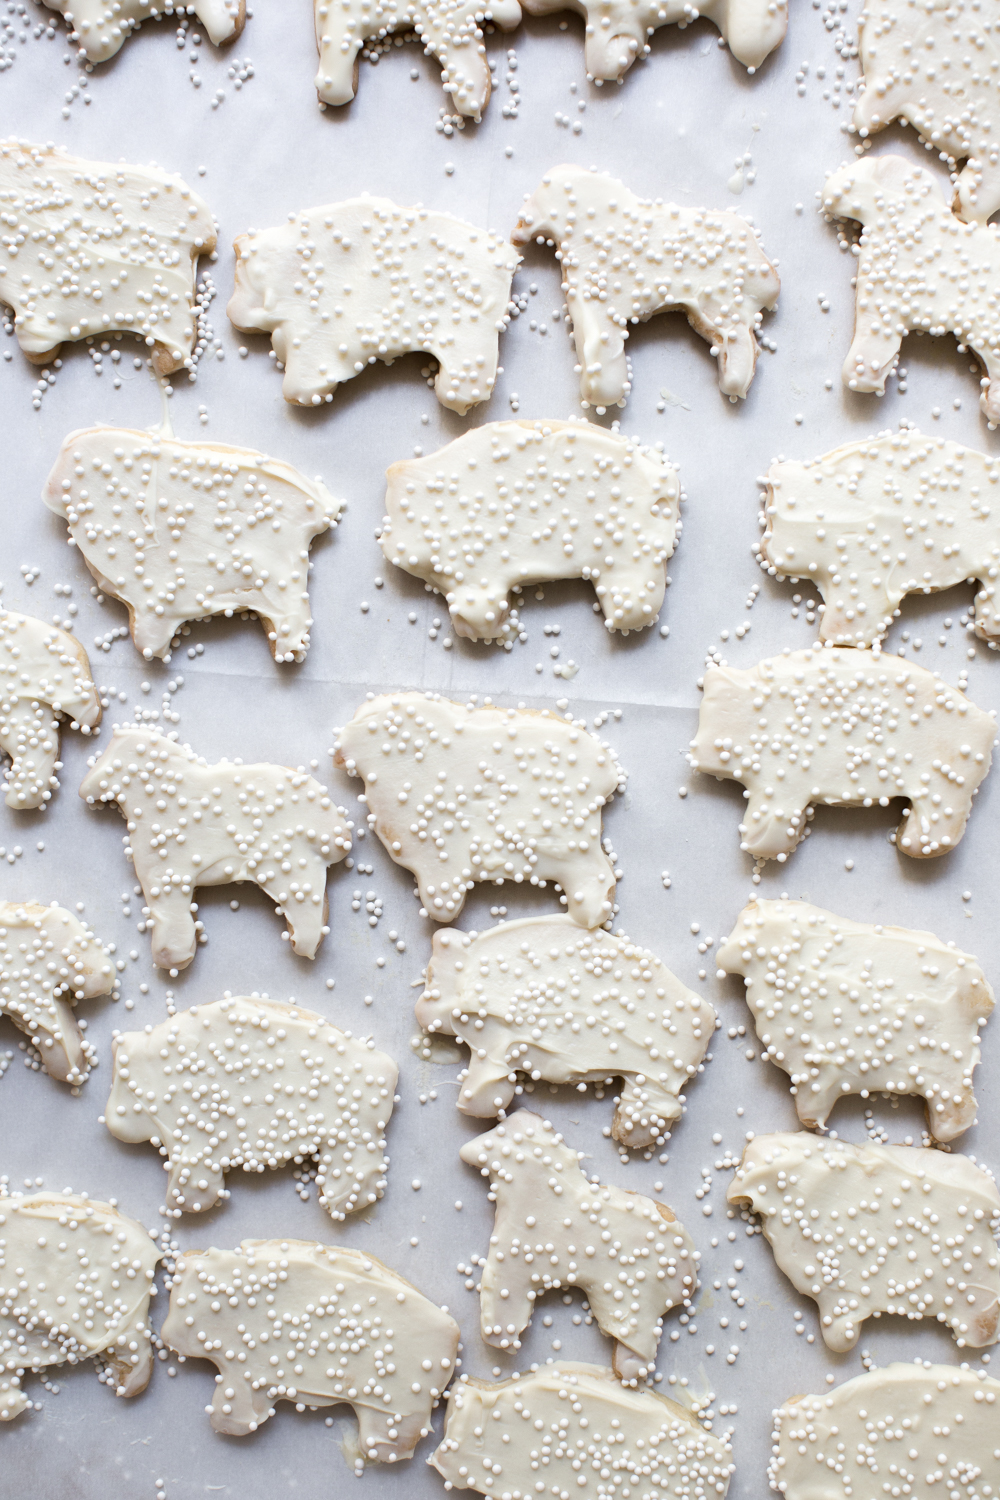 White frosted animal cookies with white sprinkles